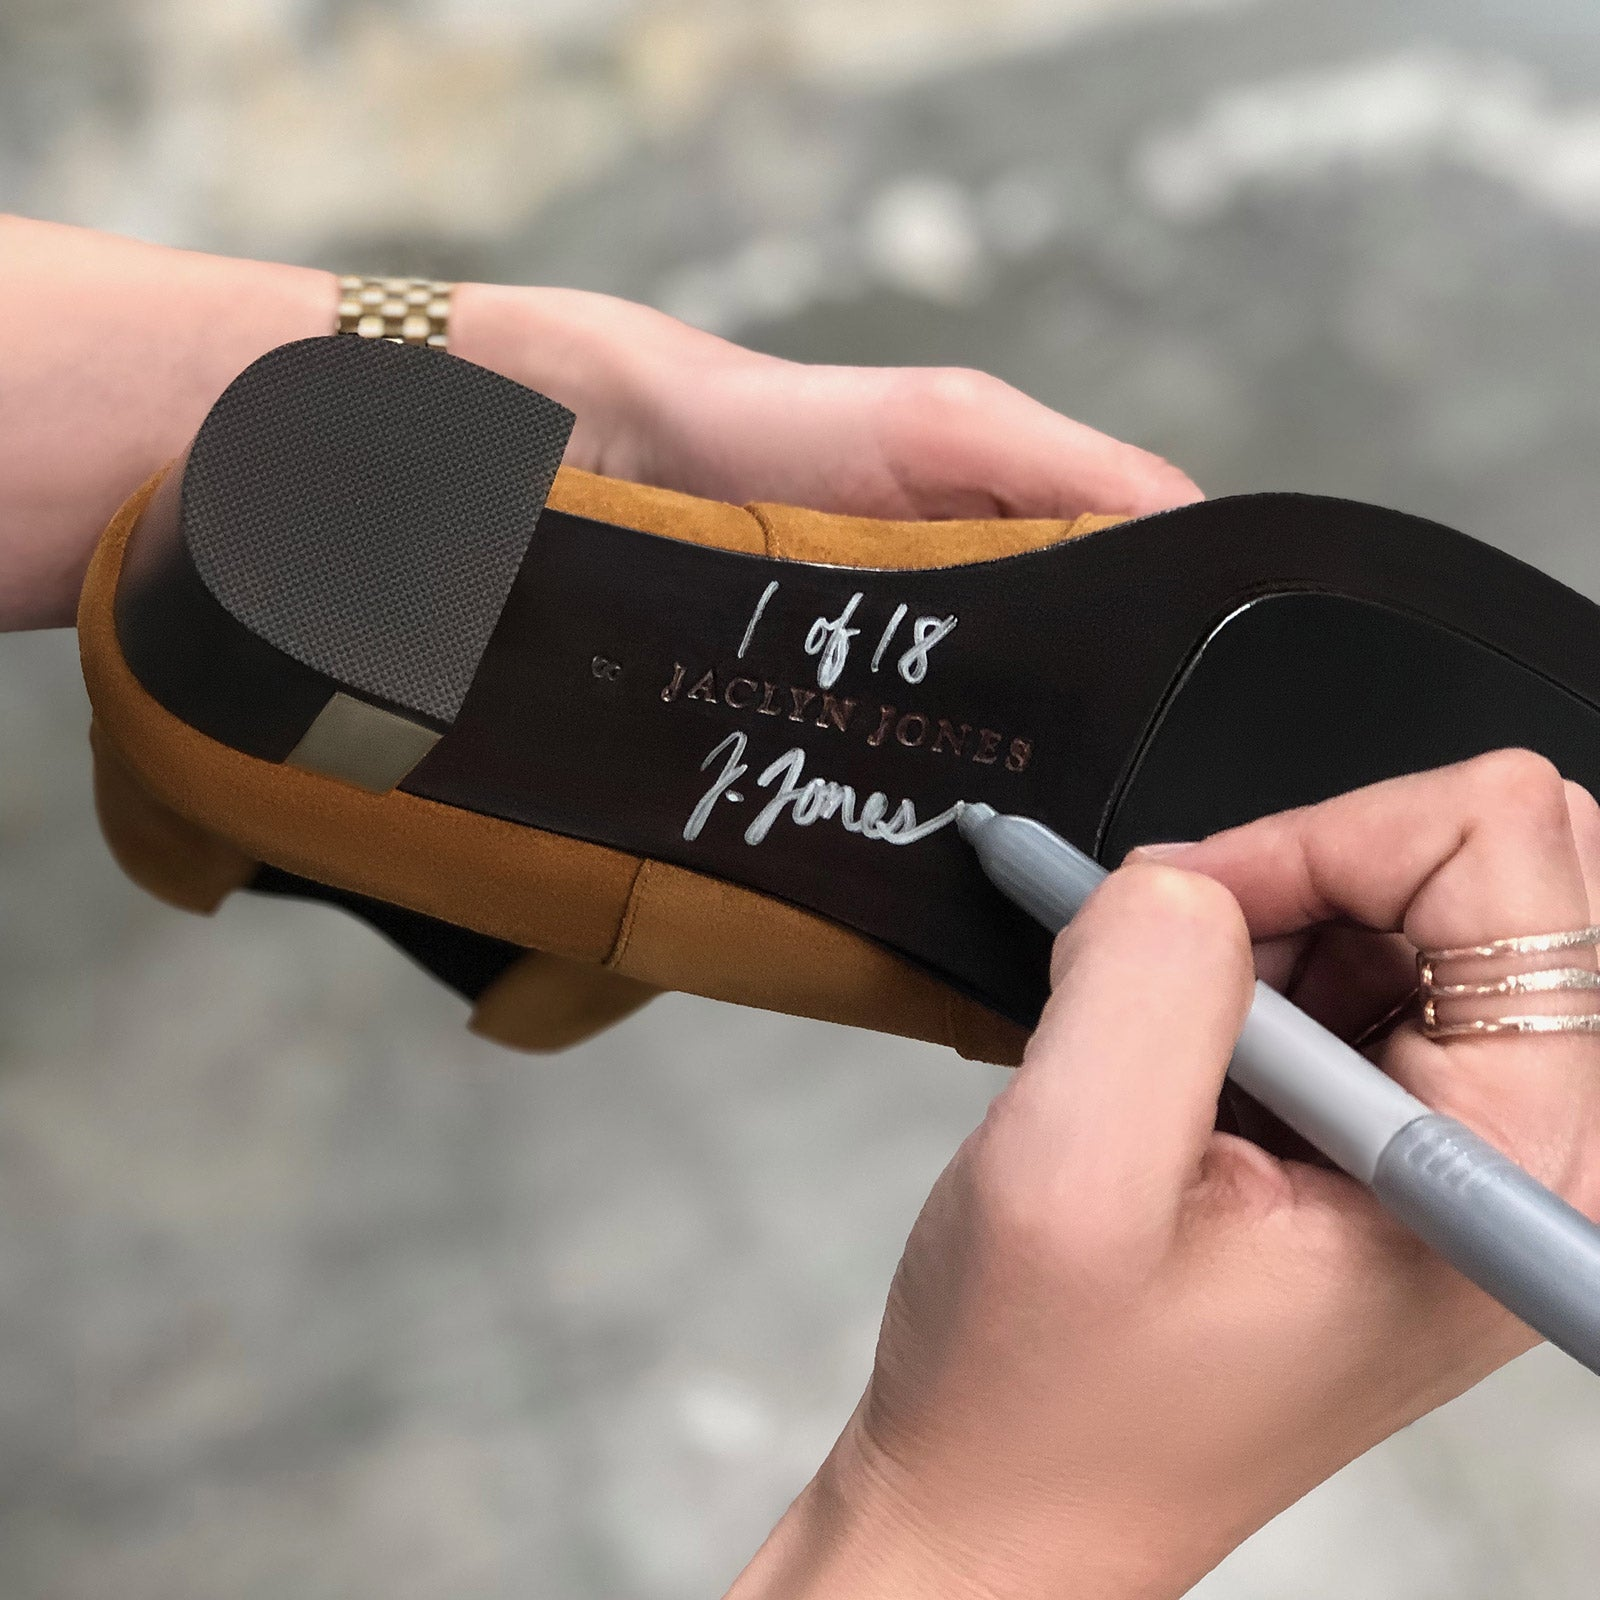 Shoes Signature on the bottom